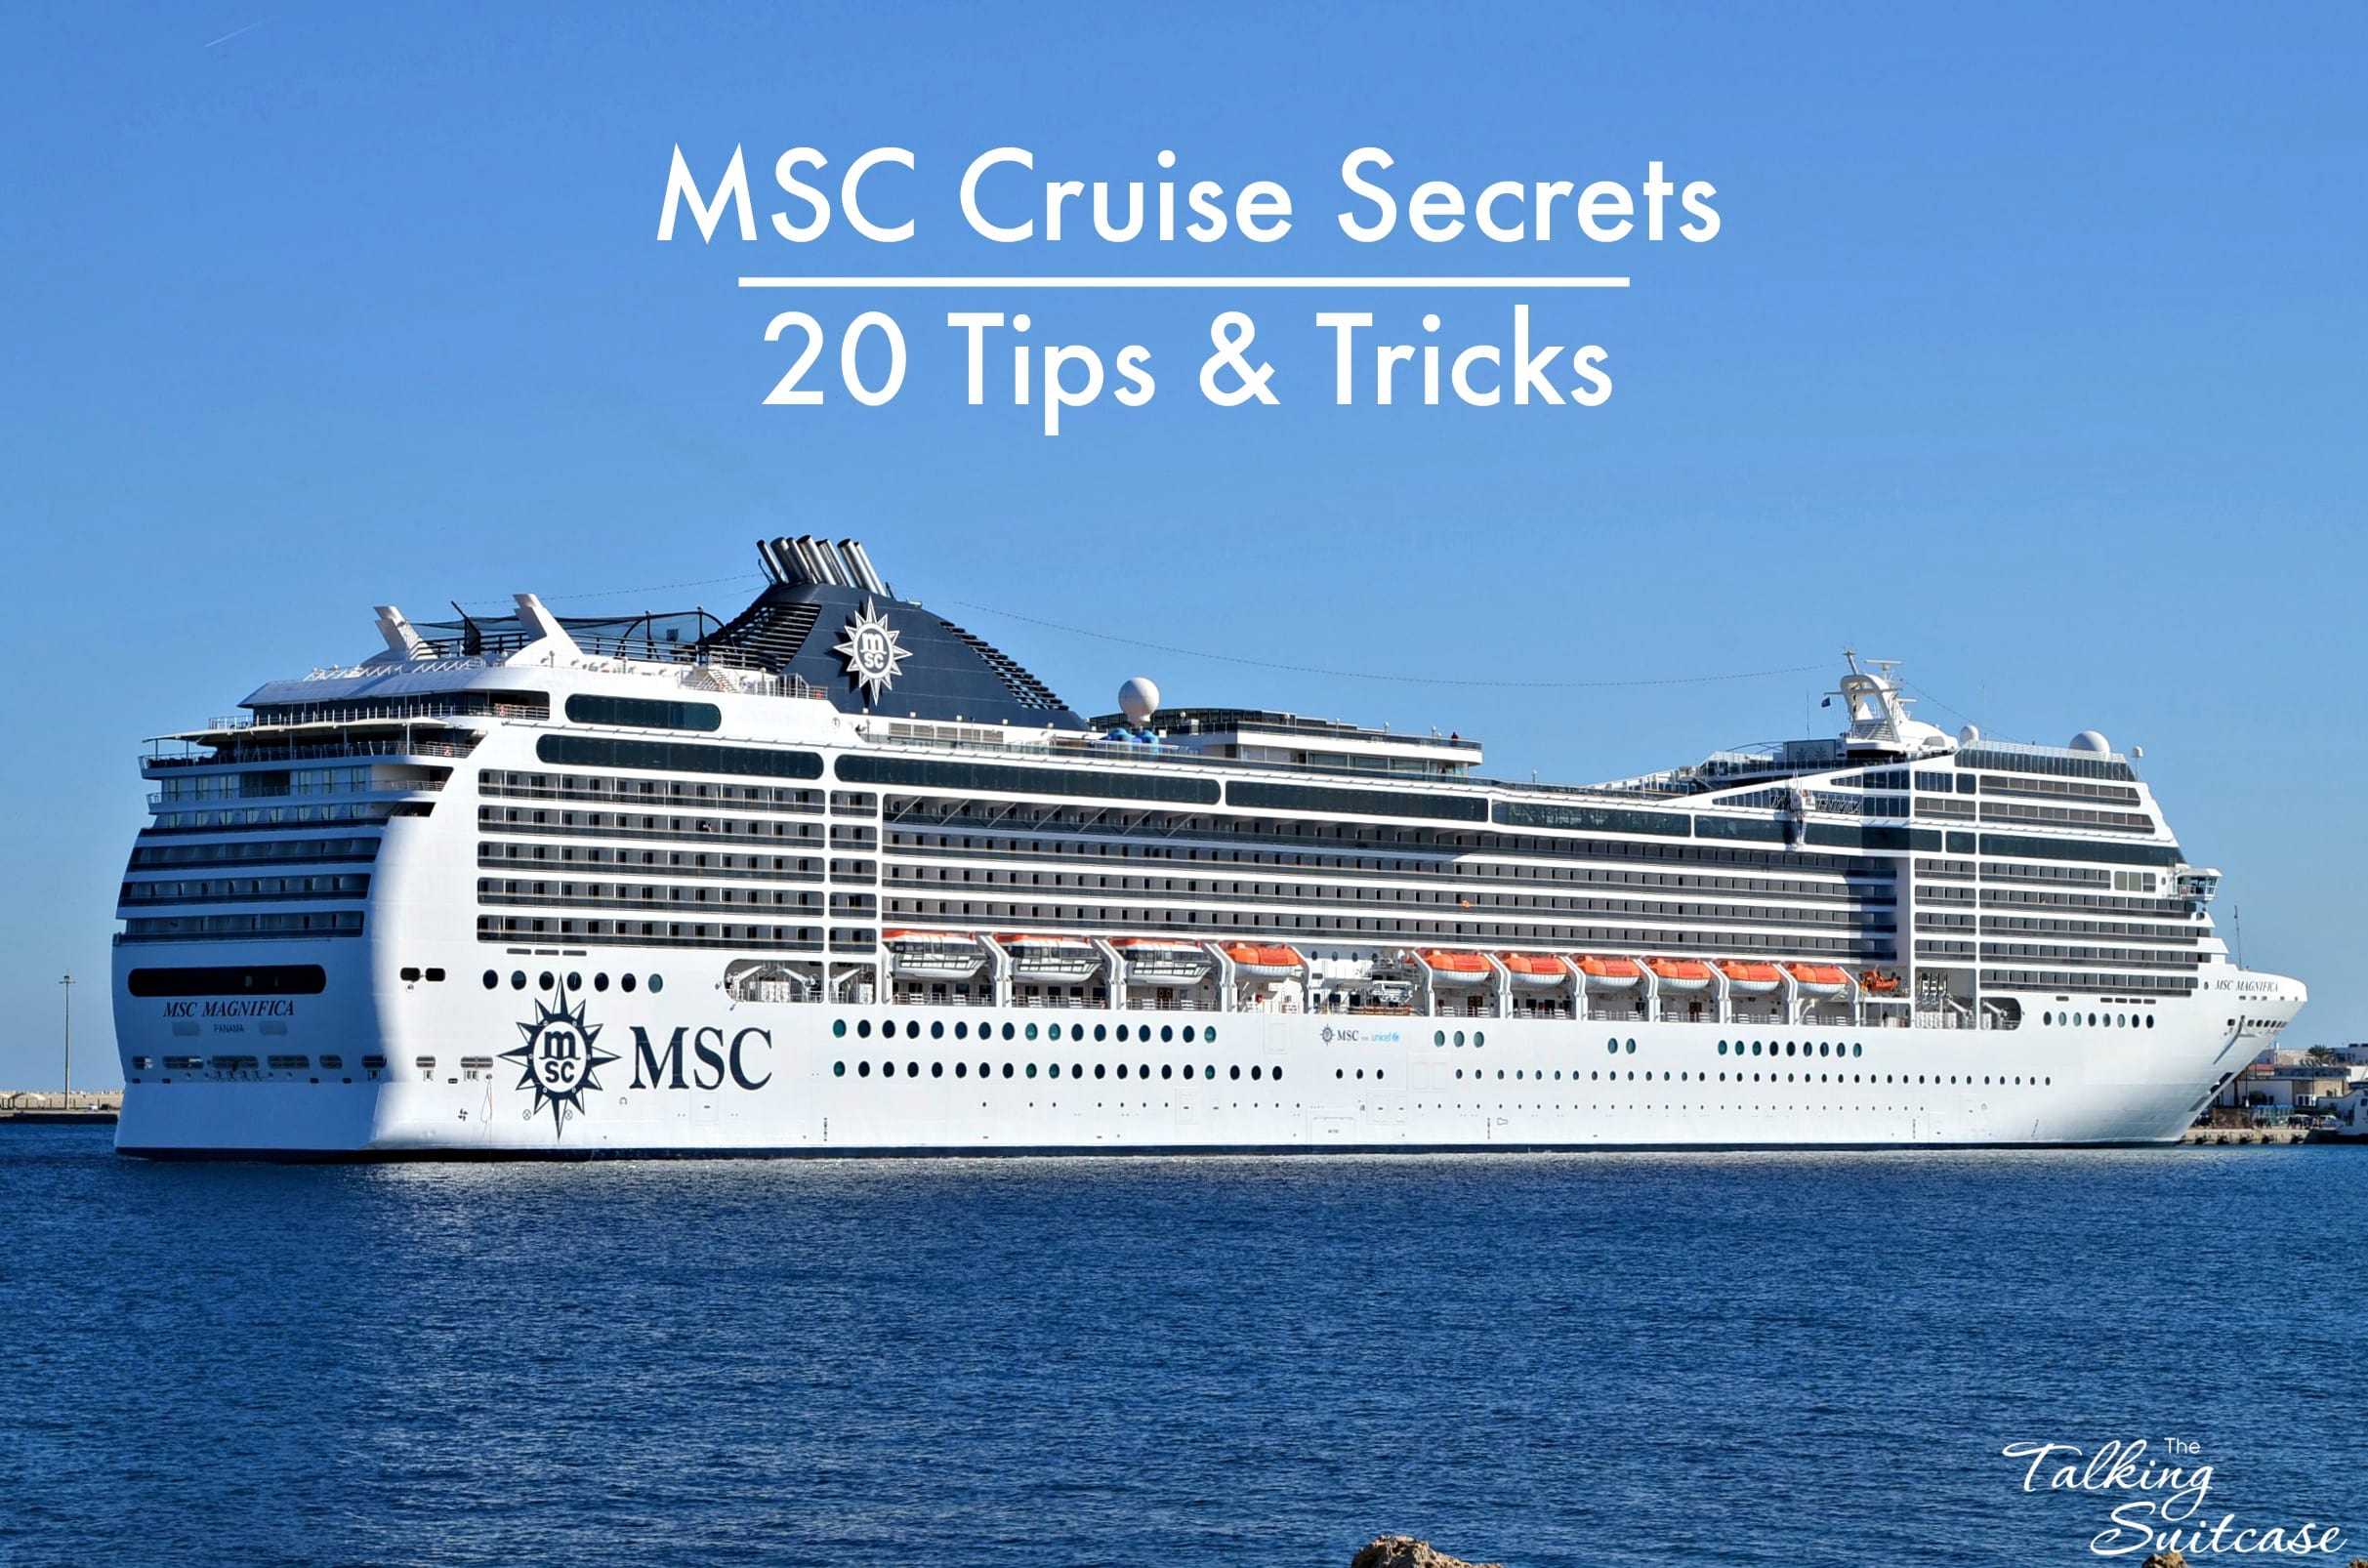 Msc Cruise Travel Secrets 20 Tips Tricks For Sailing With Msc